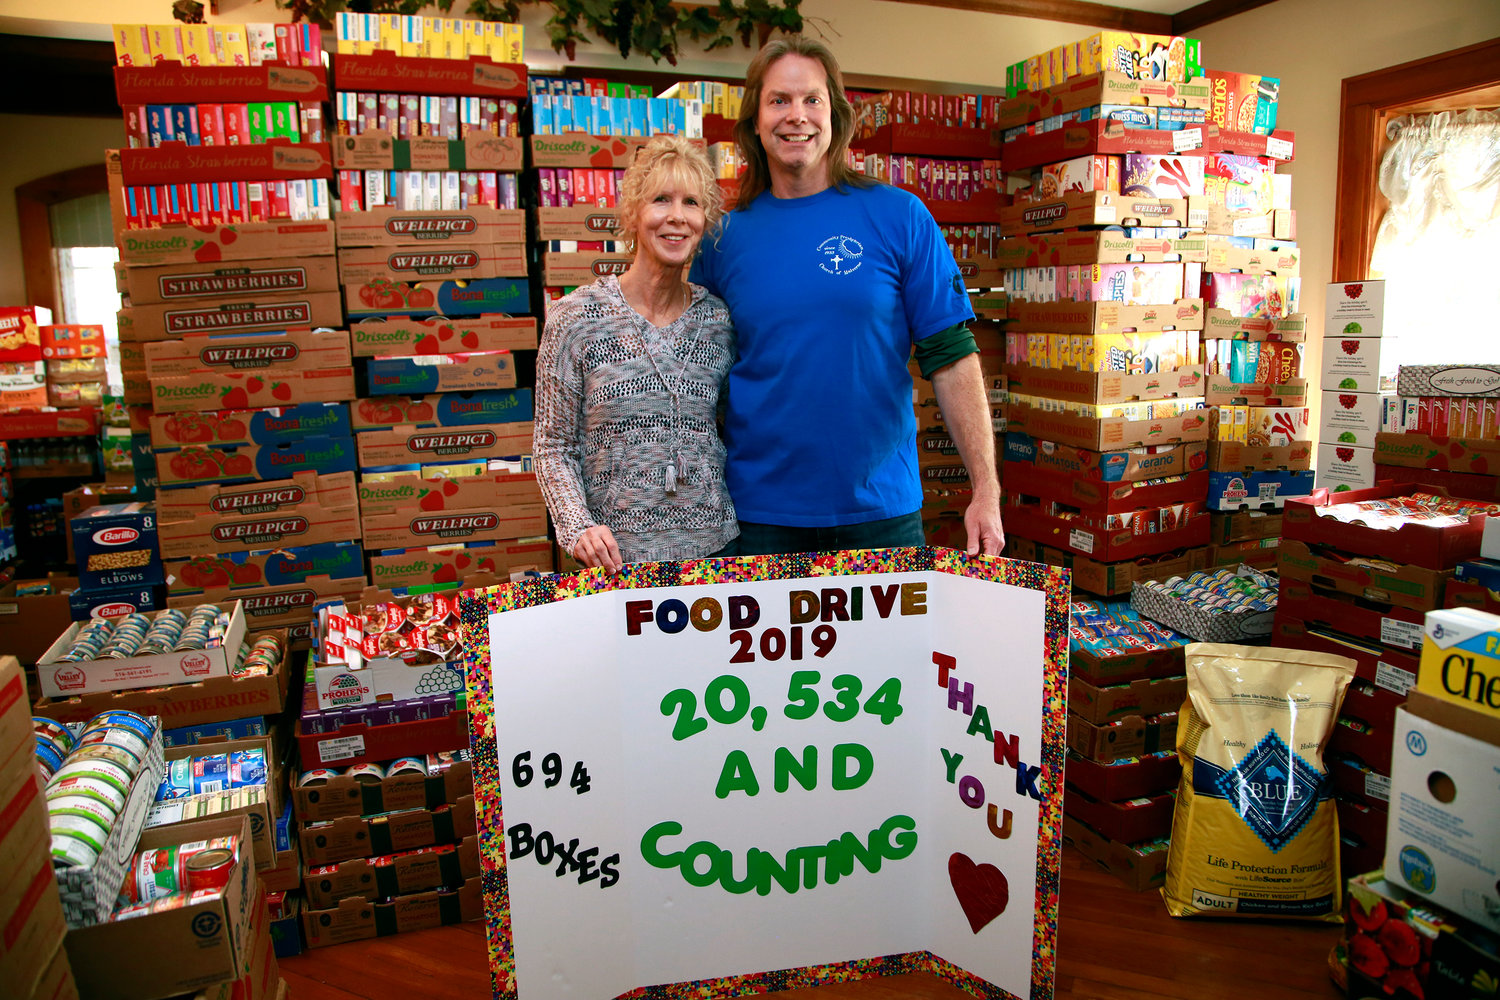 Mary and Rob Hallam collected more than 20,000 donations, both food and money, at their annual food drive.